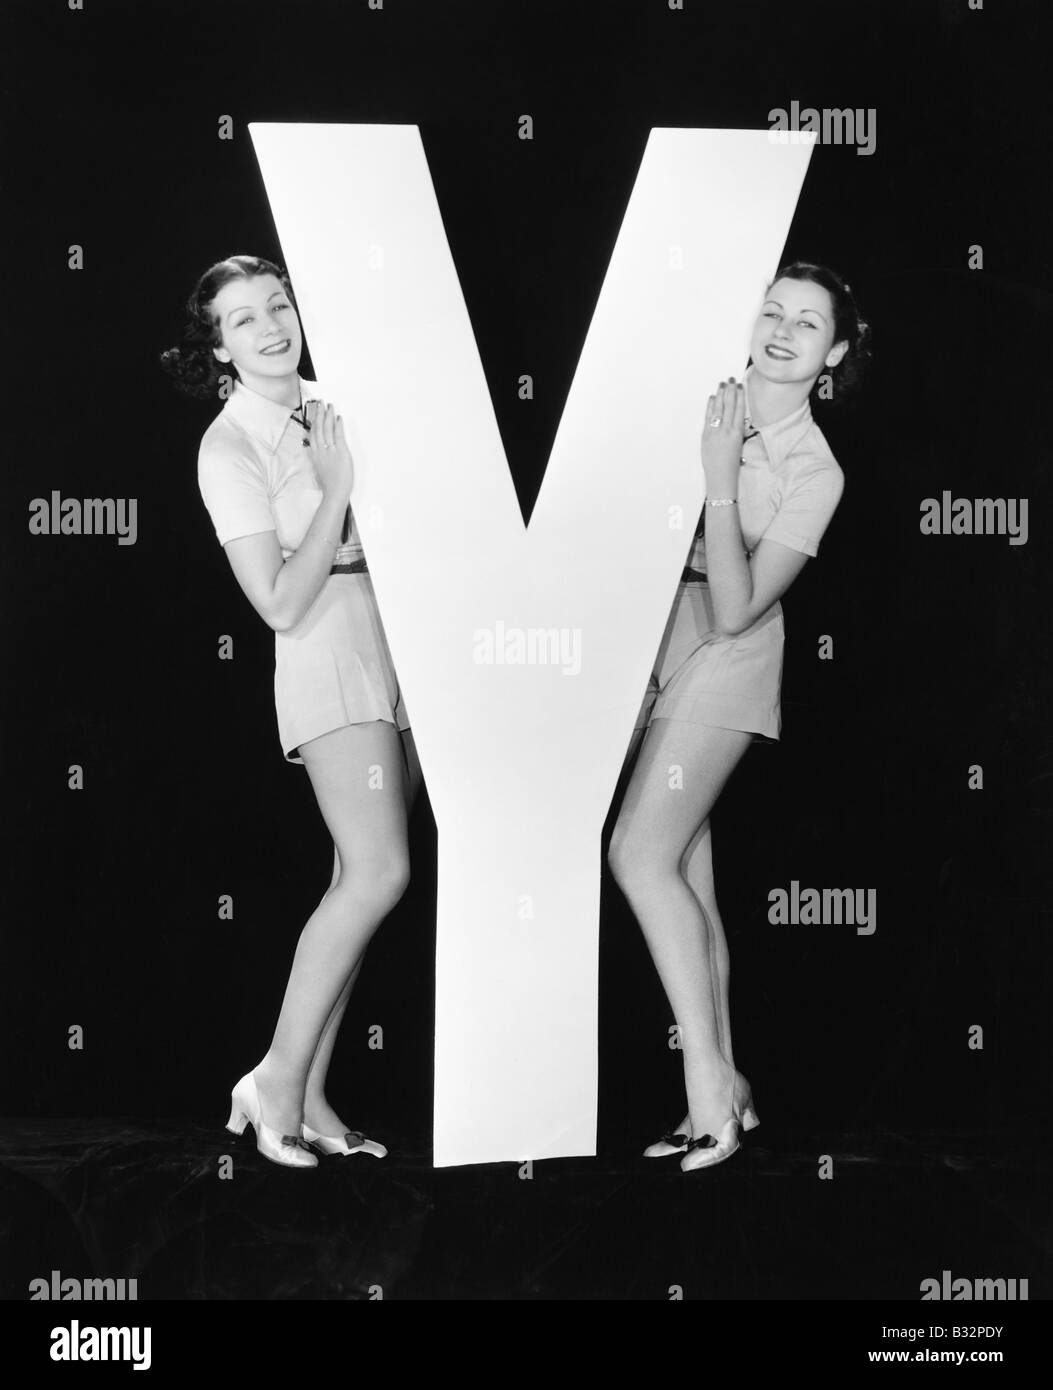 letter y photography